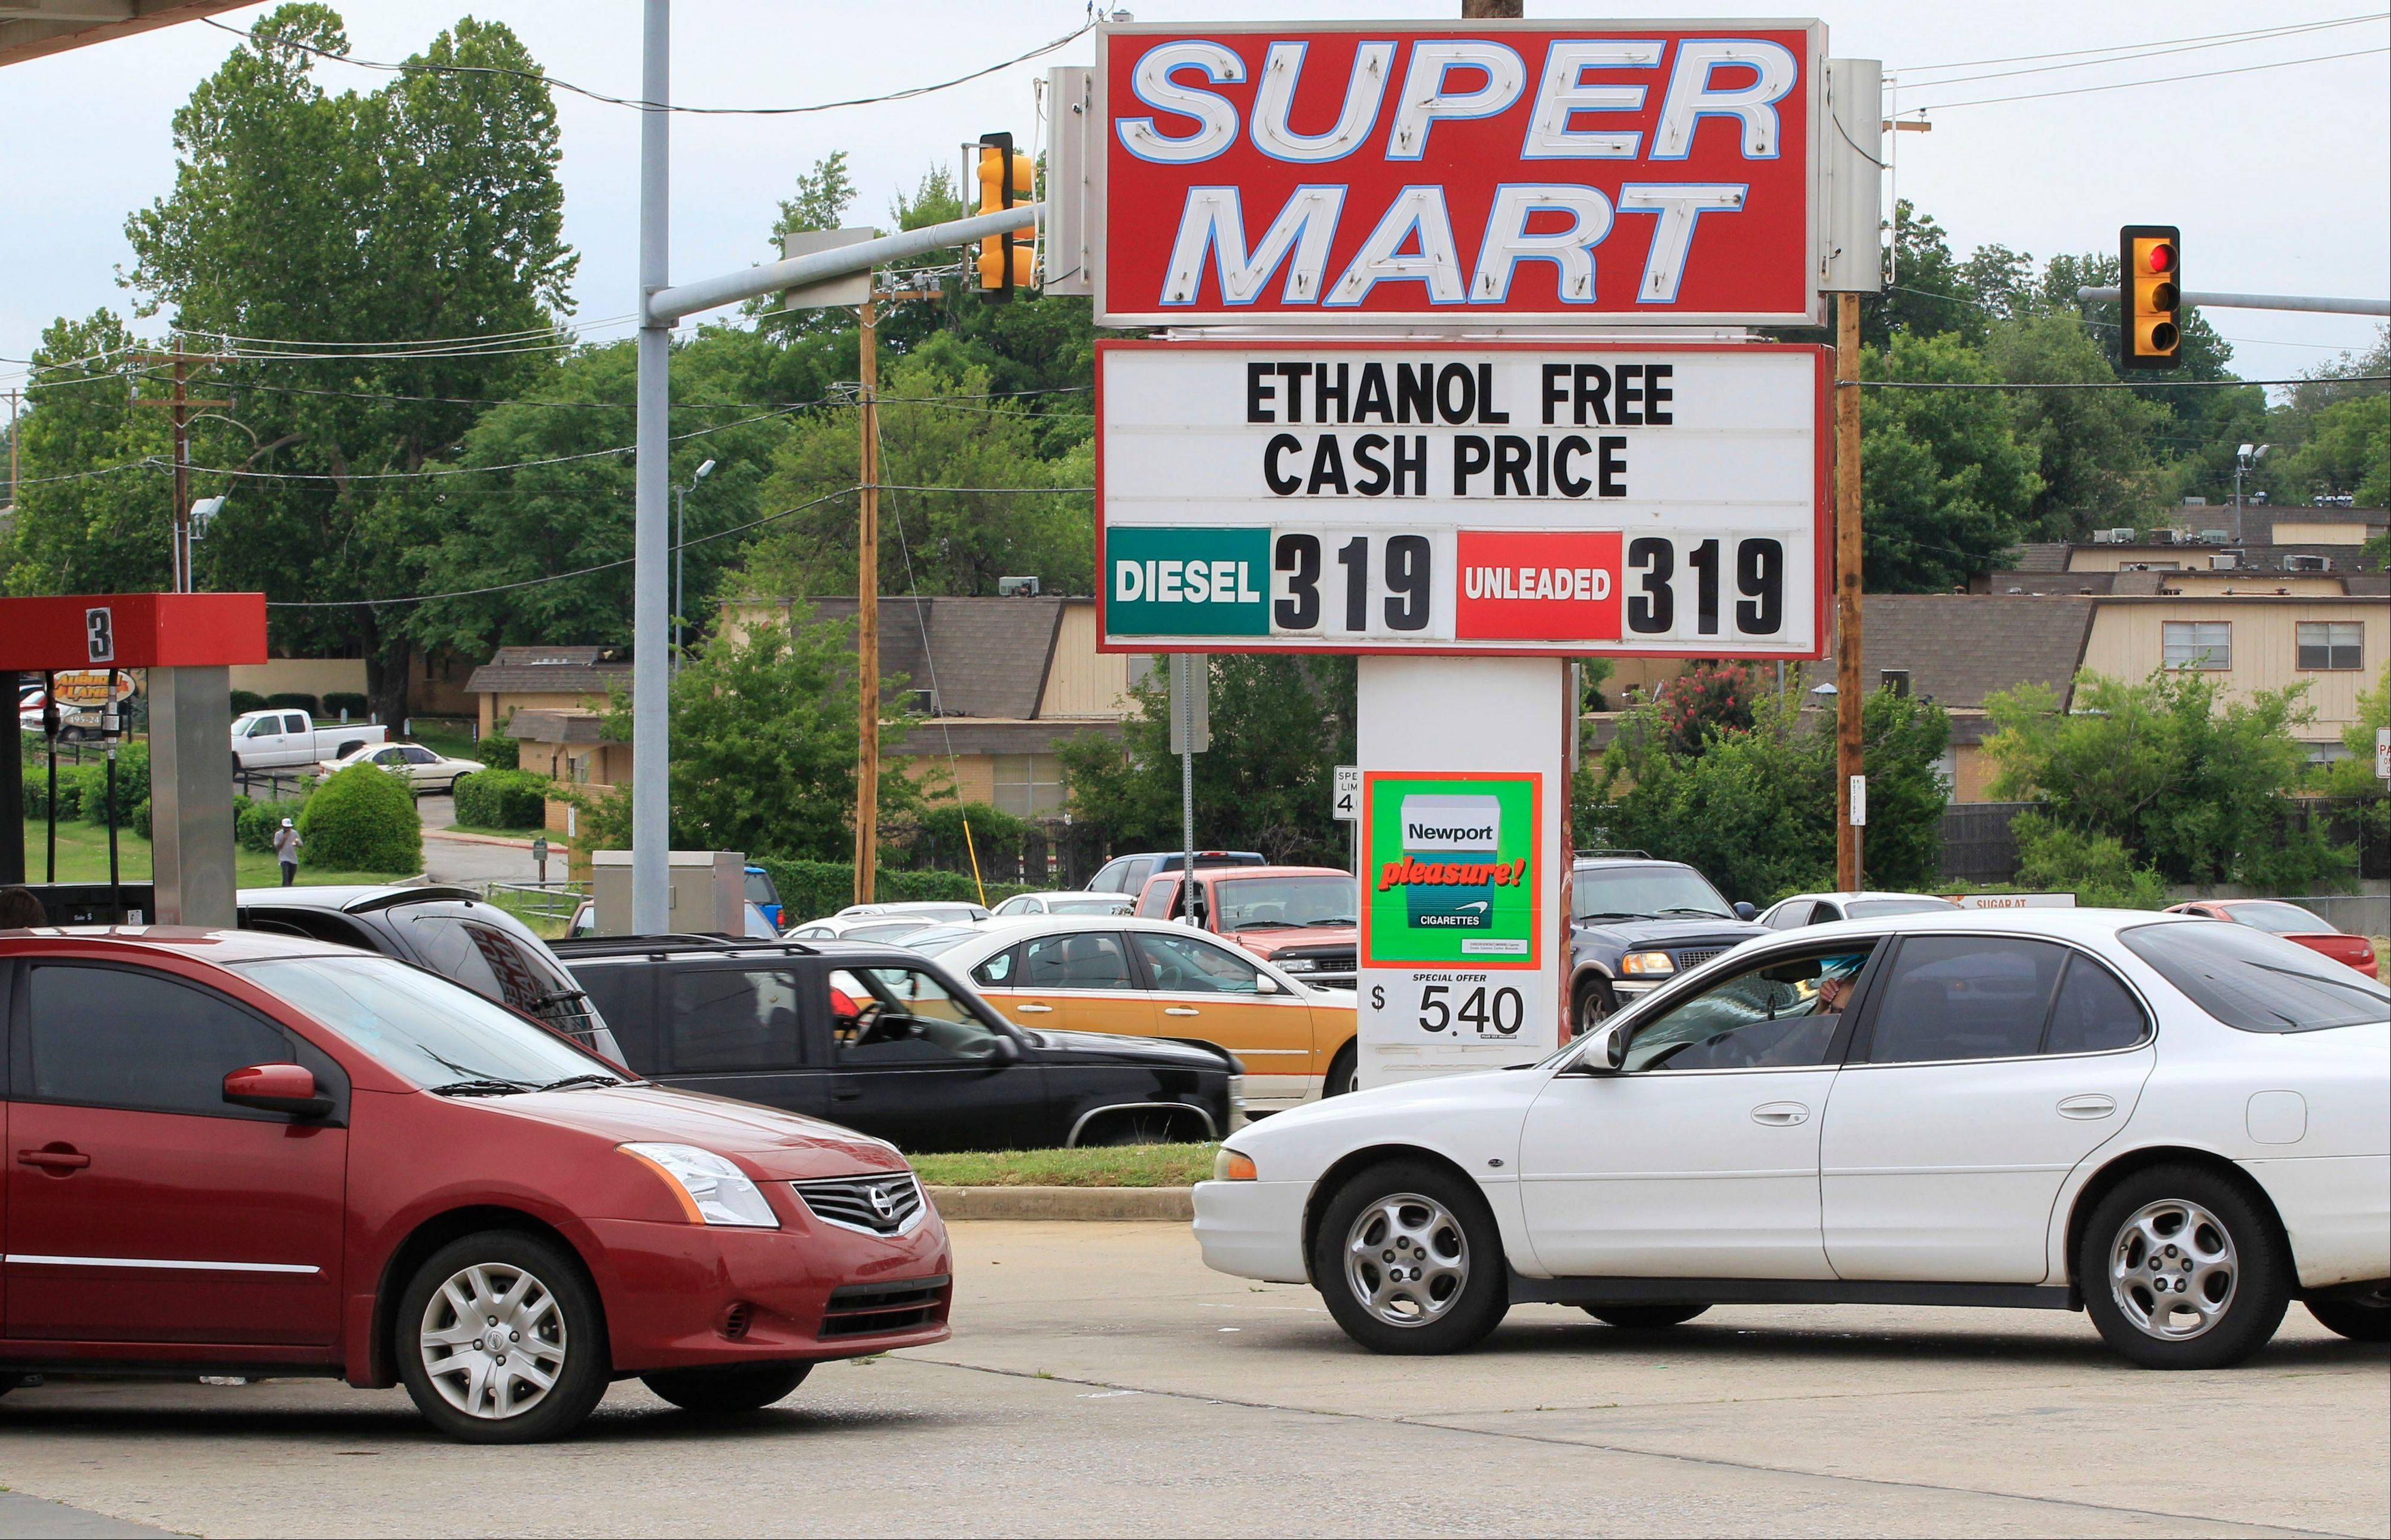 Cars line up for gasoline at an advertised cash price of $3.19 at Super Mart in Oklahoma City, Thursday.